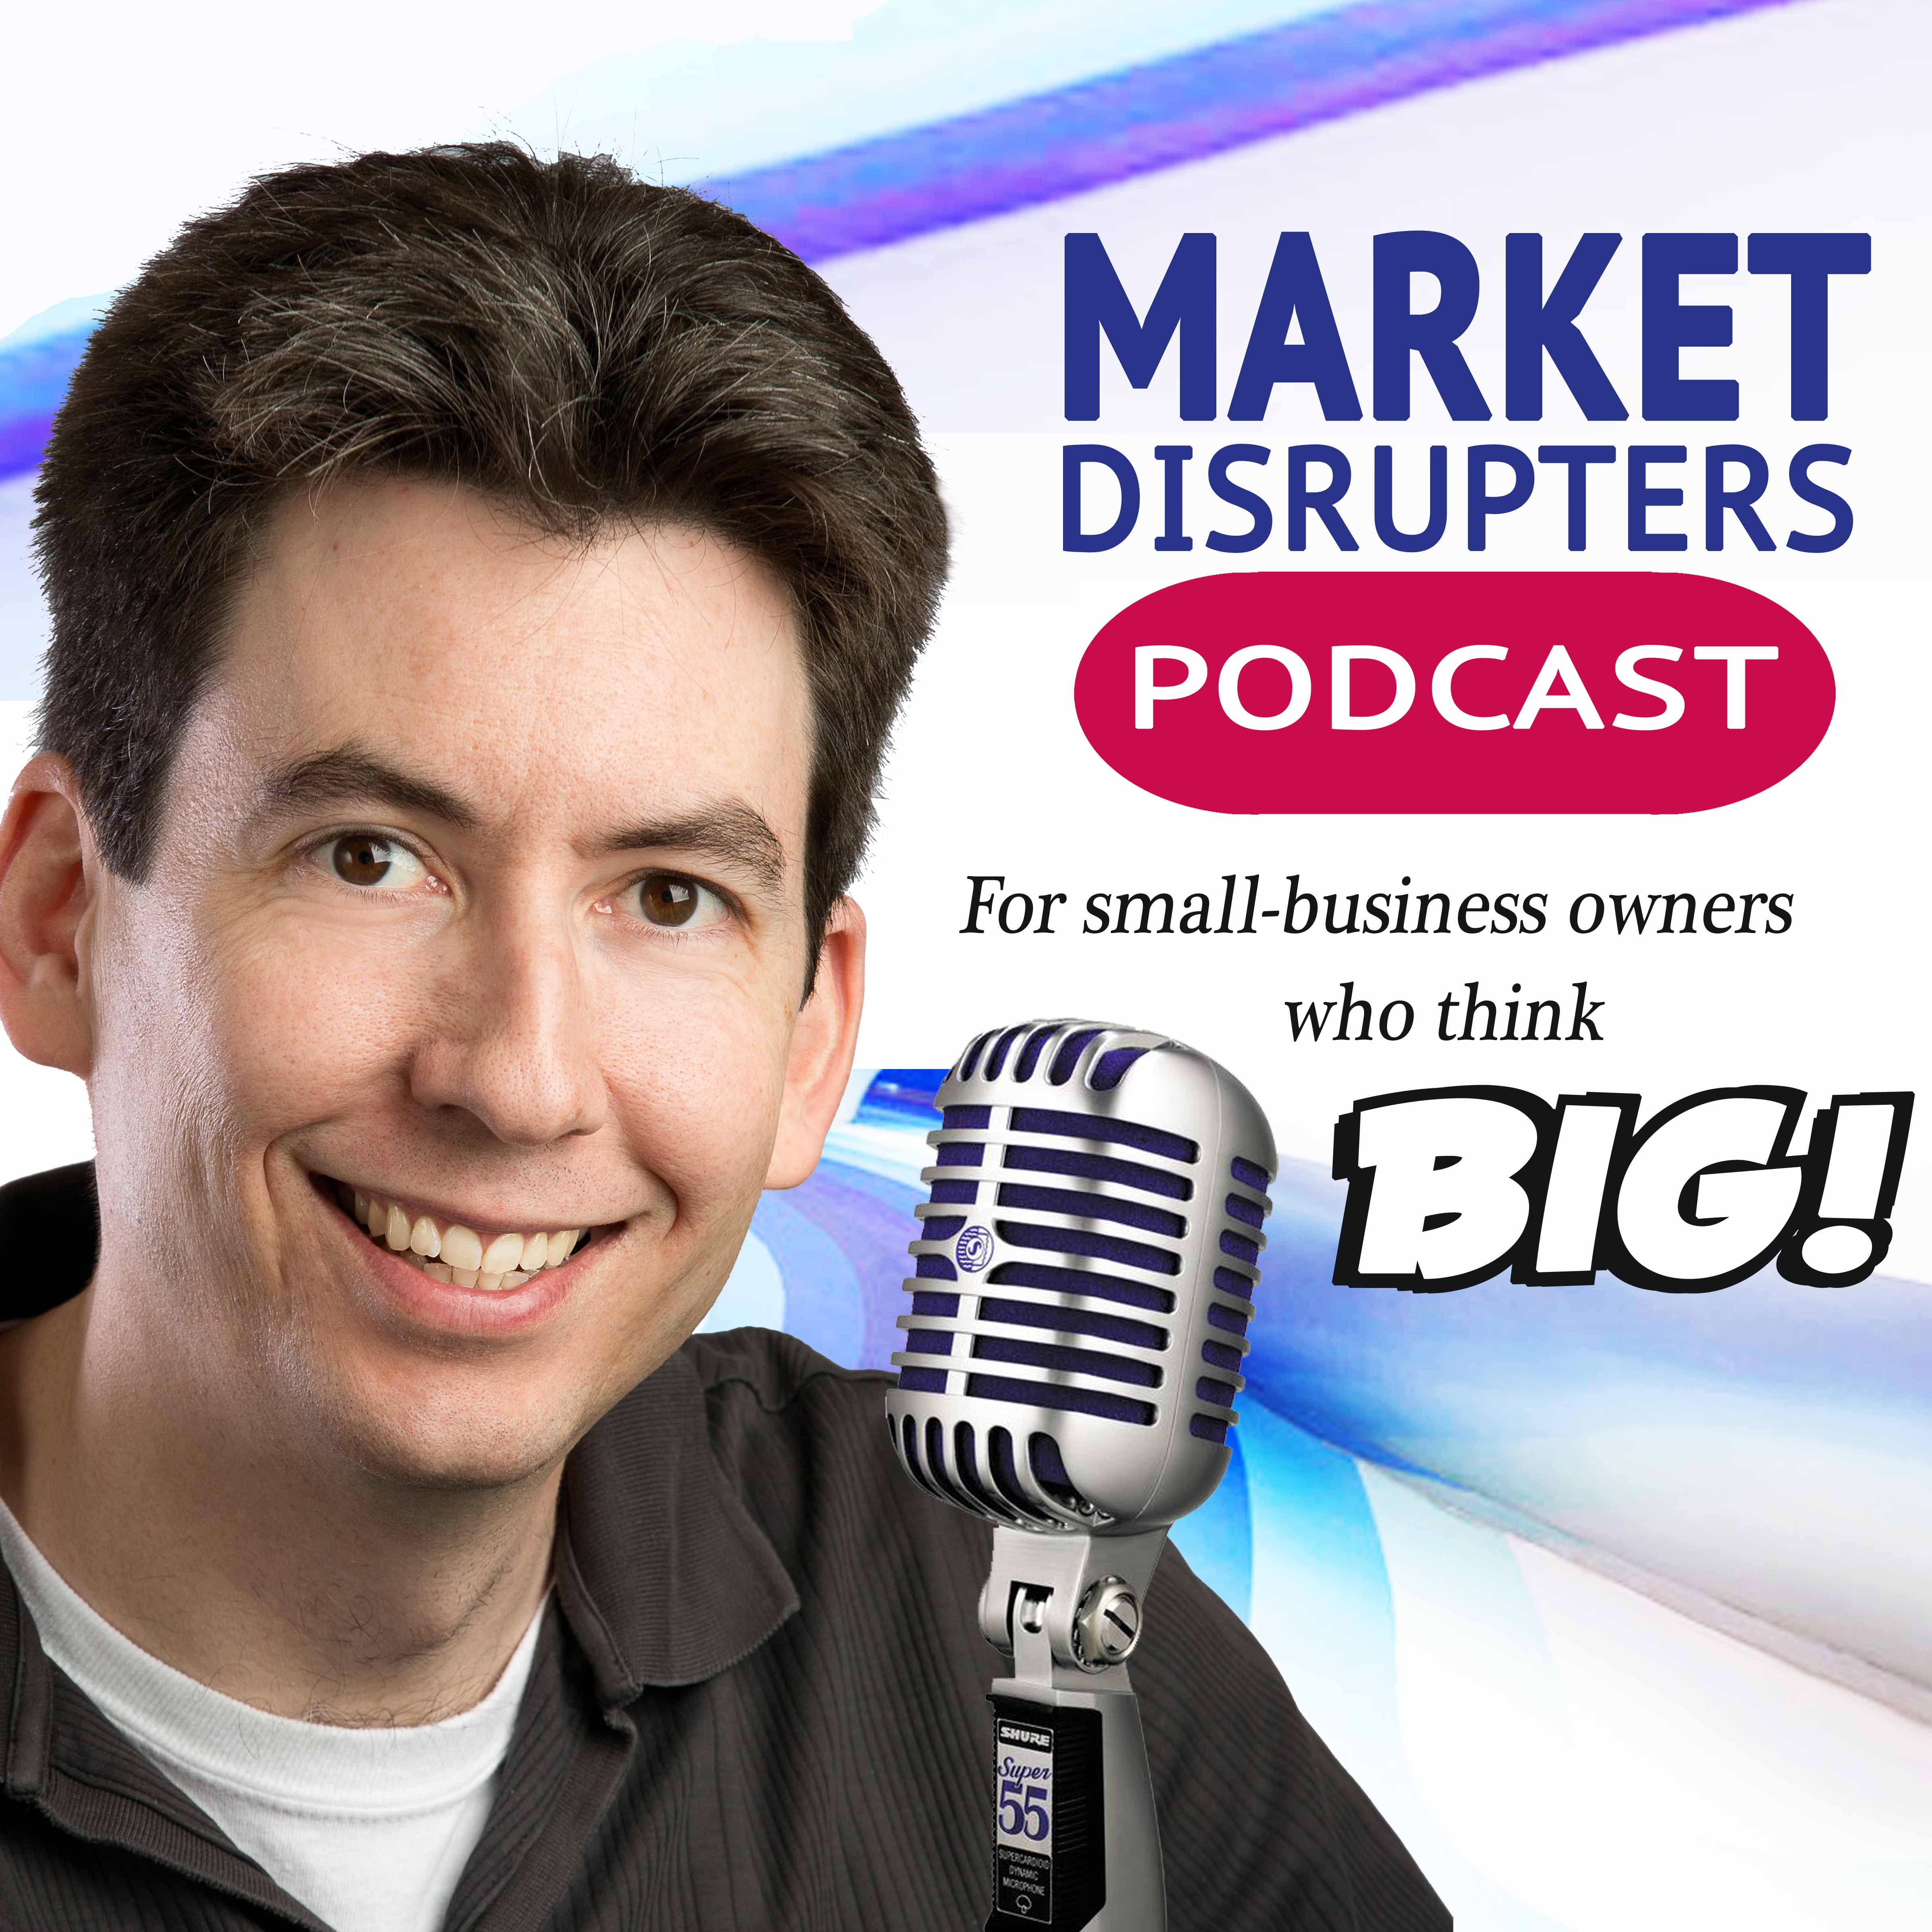 The Market Disrupter's Podcast